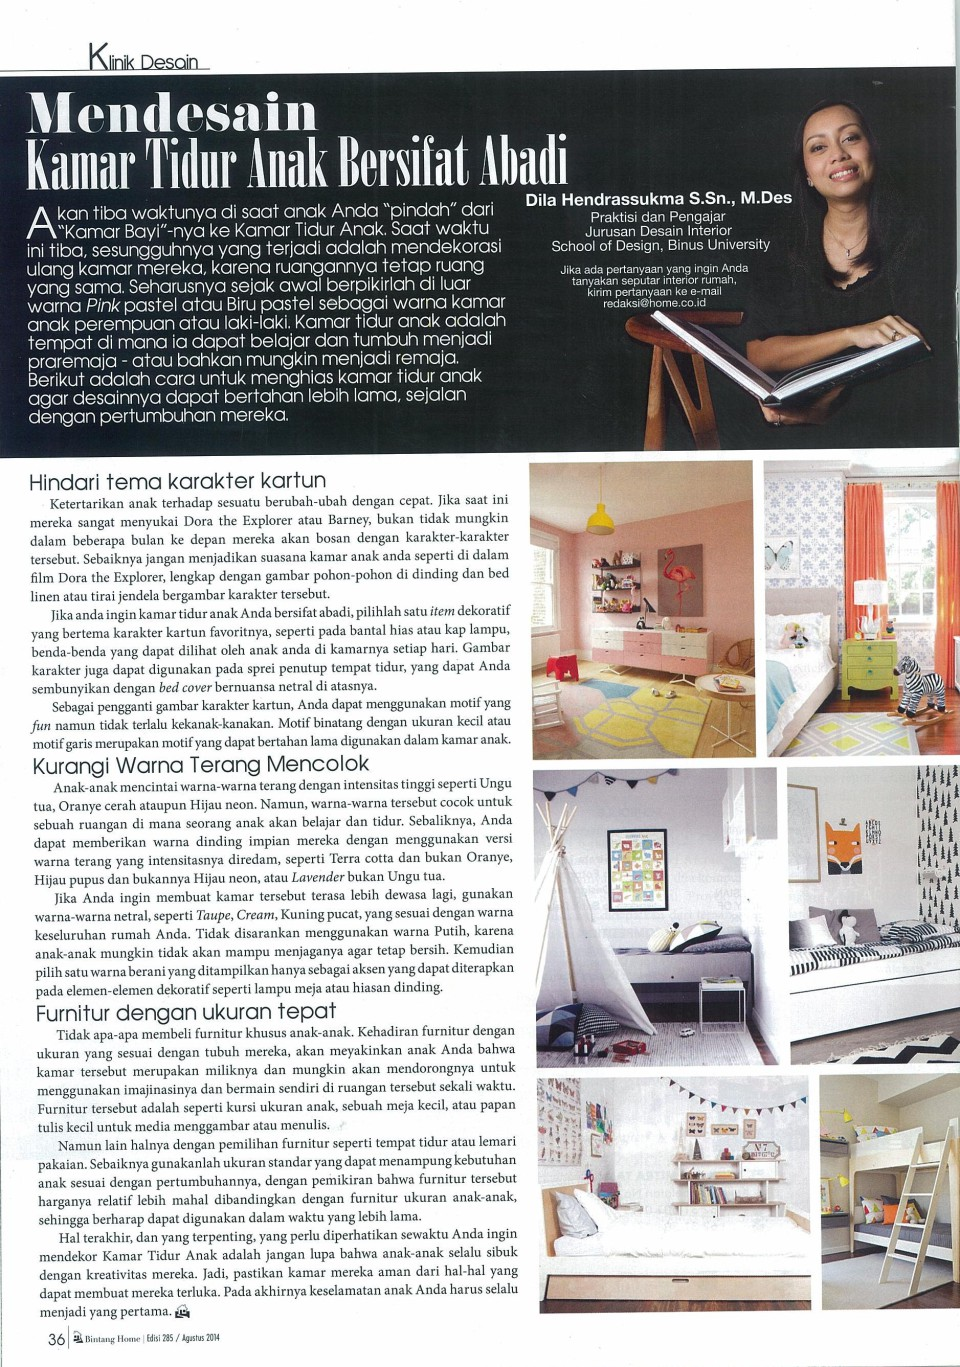 Klinik Desain from Bintang Home | edition 278 |April 2014